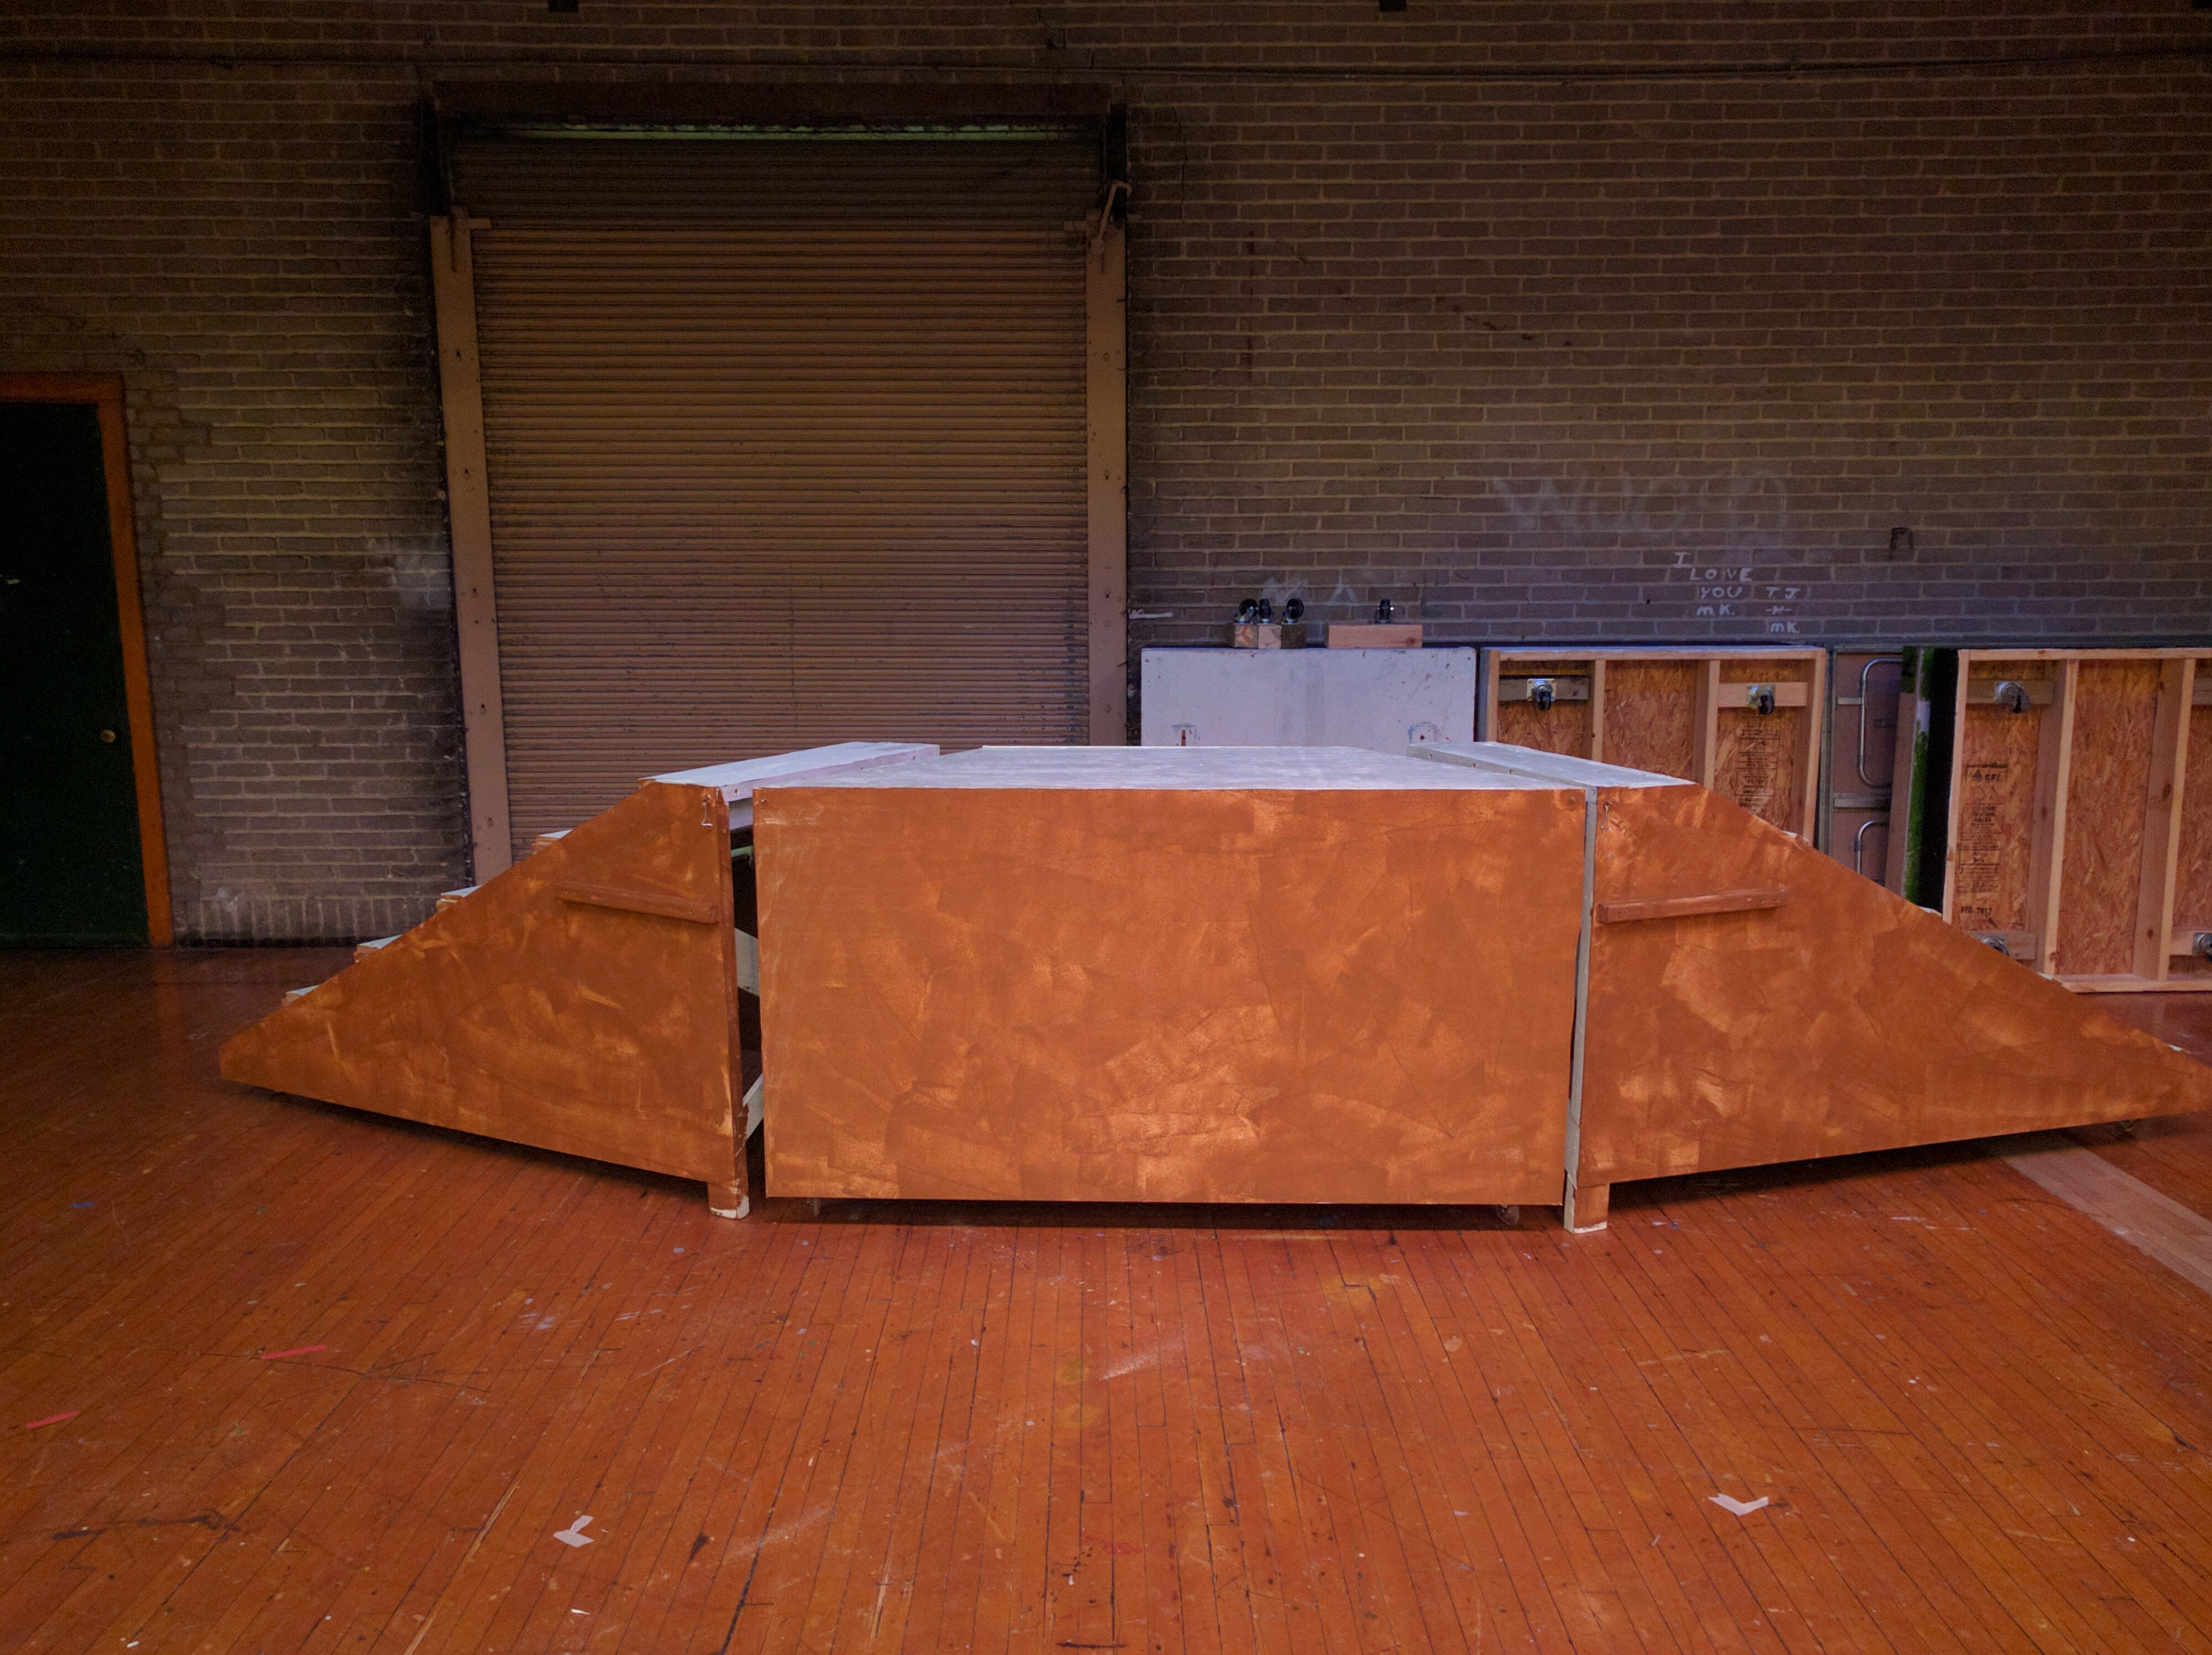 front view of set built for school play